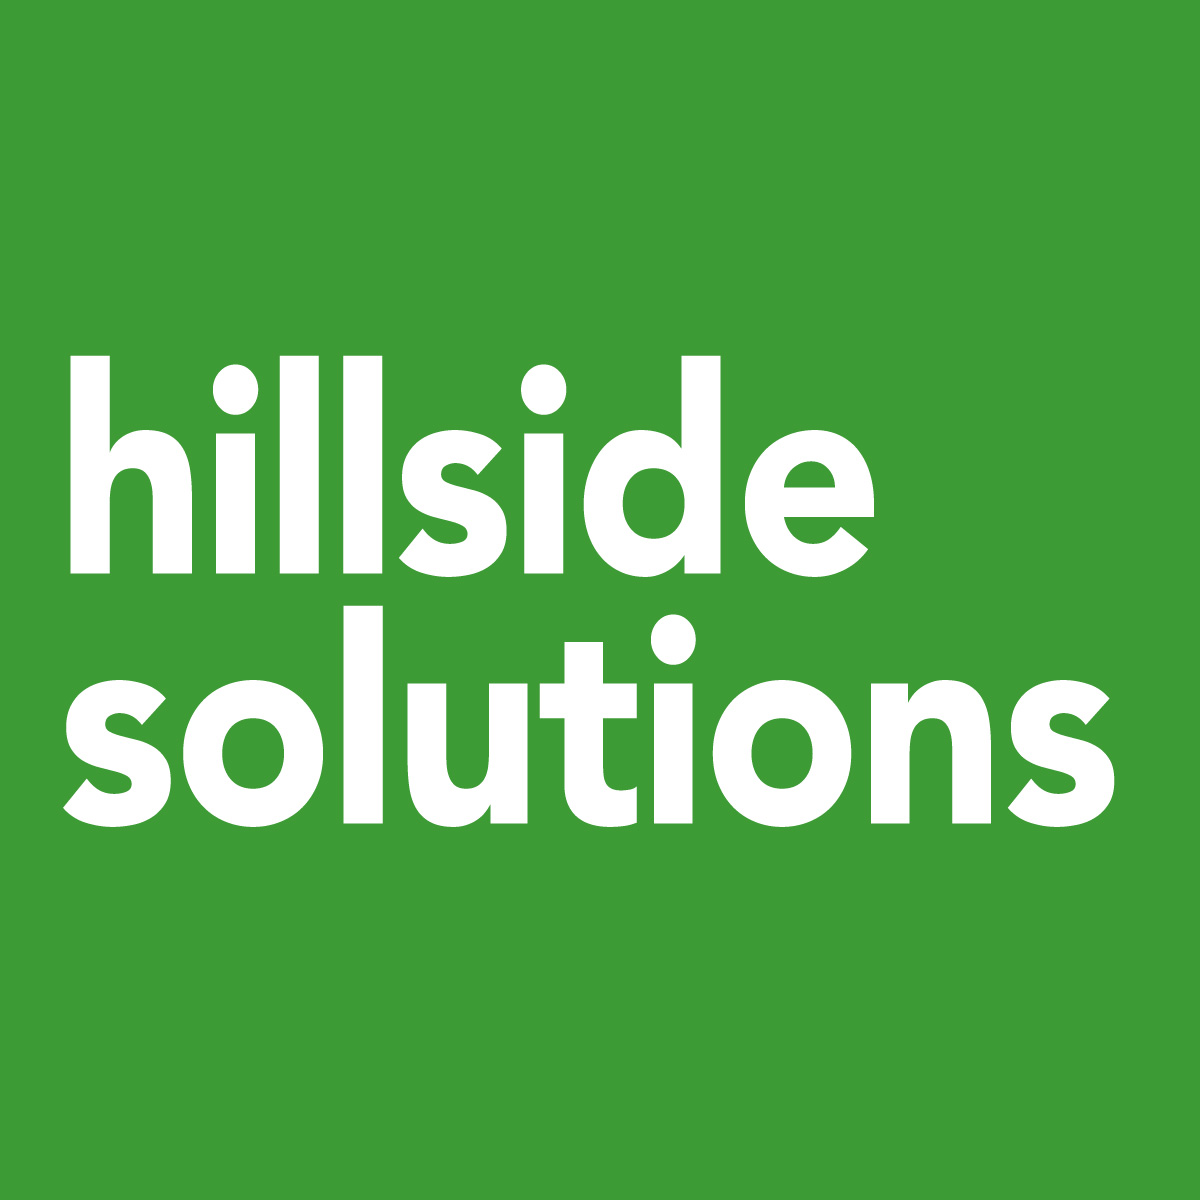 Hillside Solutions